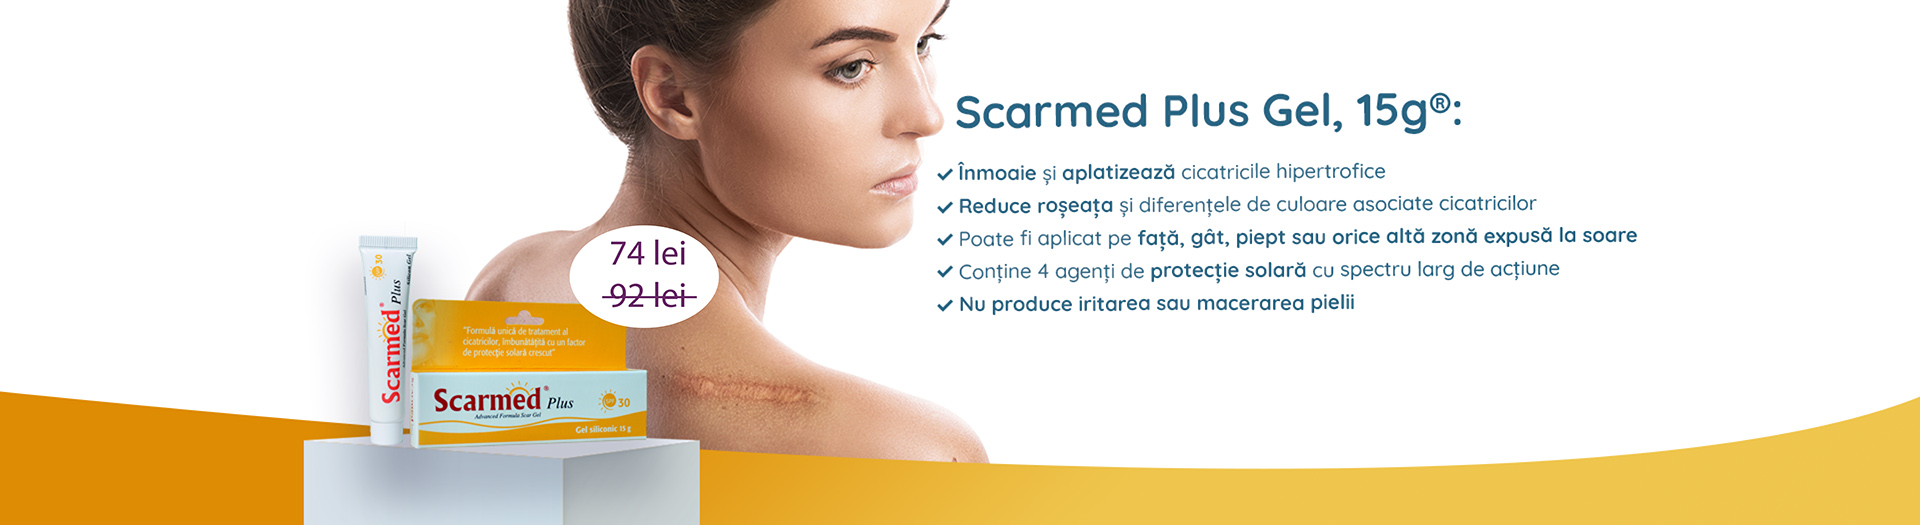 Promo Scarmed Plus Gel